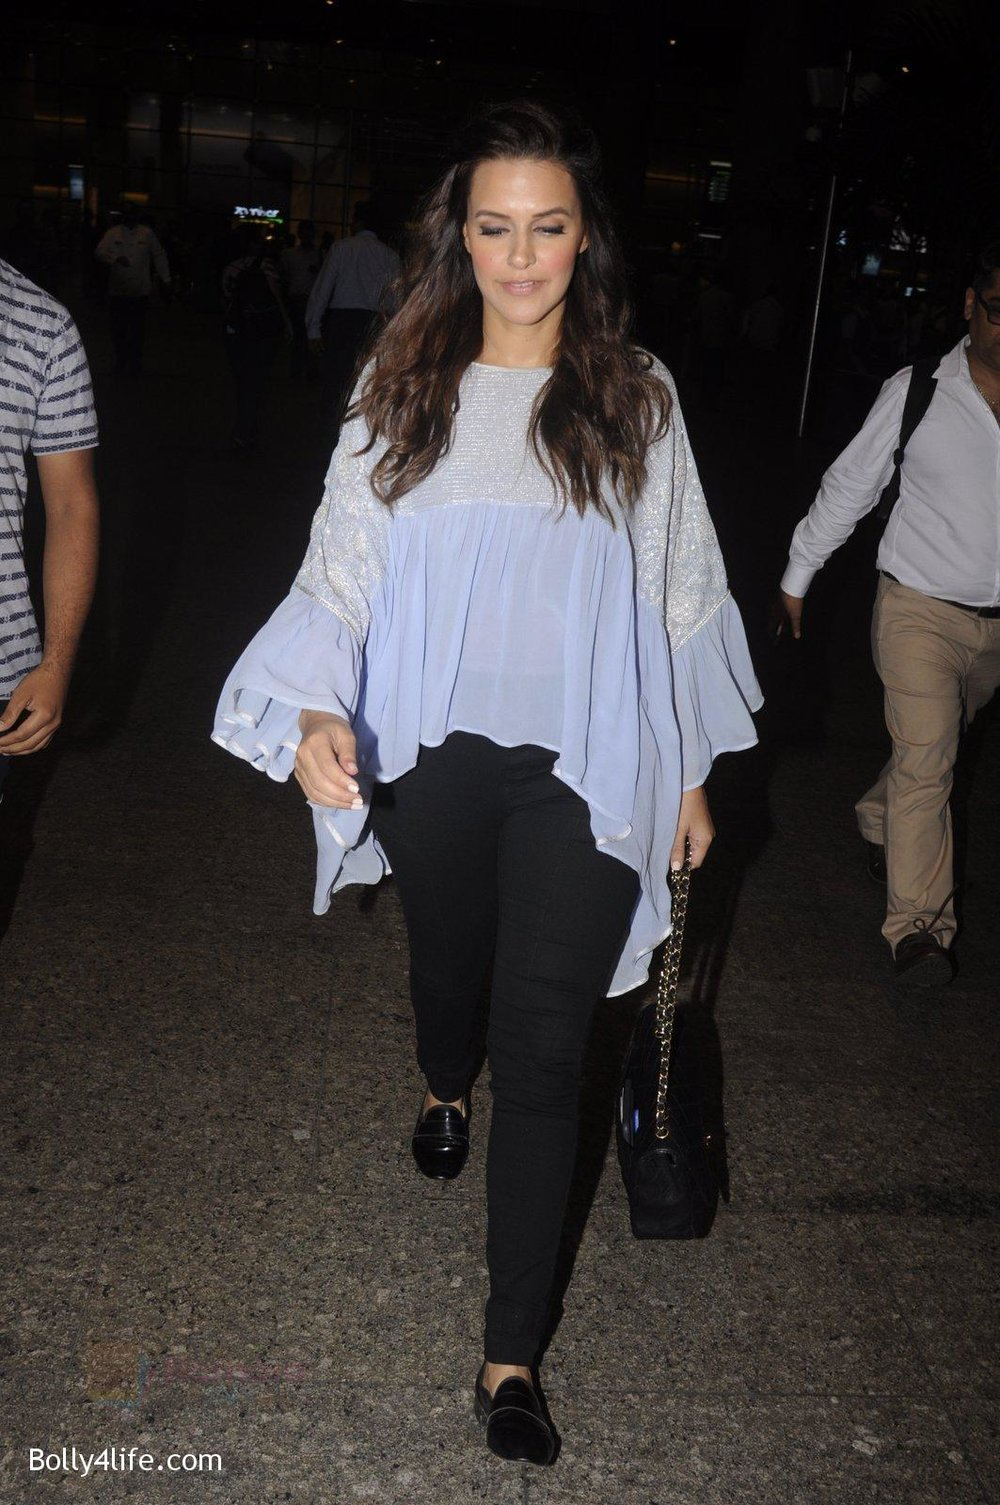 Neha-Dhupia-snapped-at-airport-on-20th-Sept-2016-37.jpg